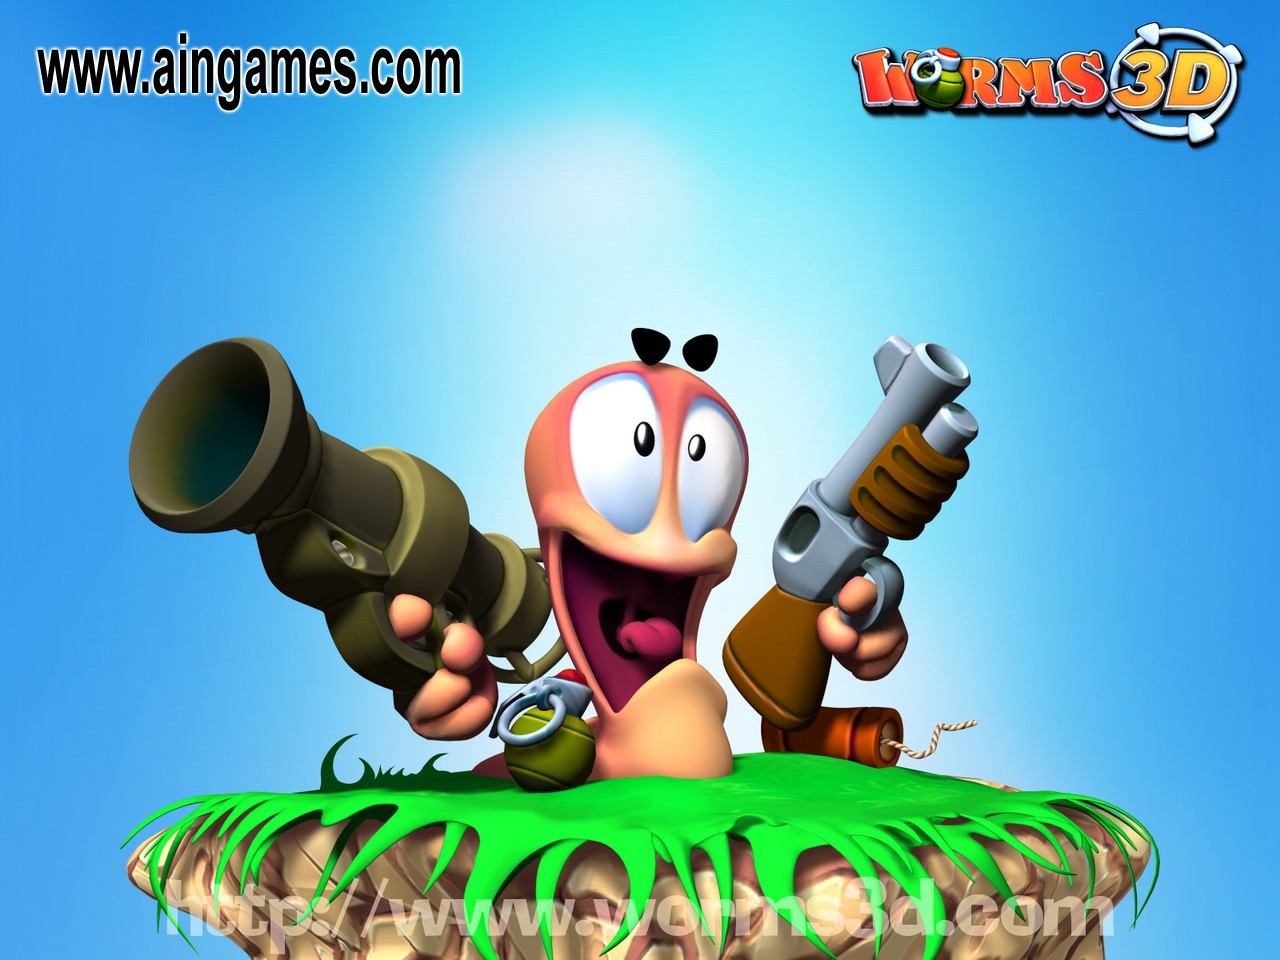 worms game online